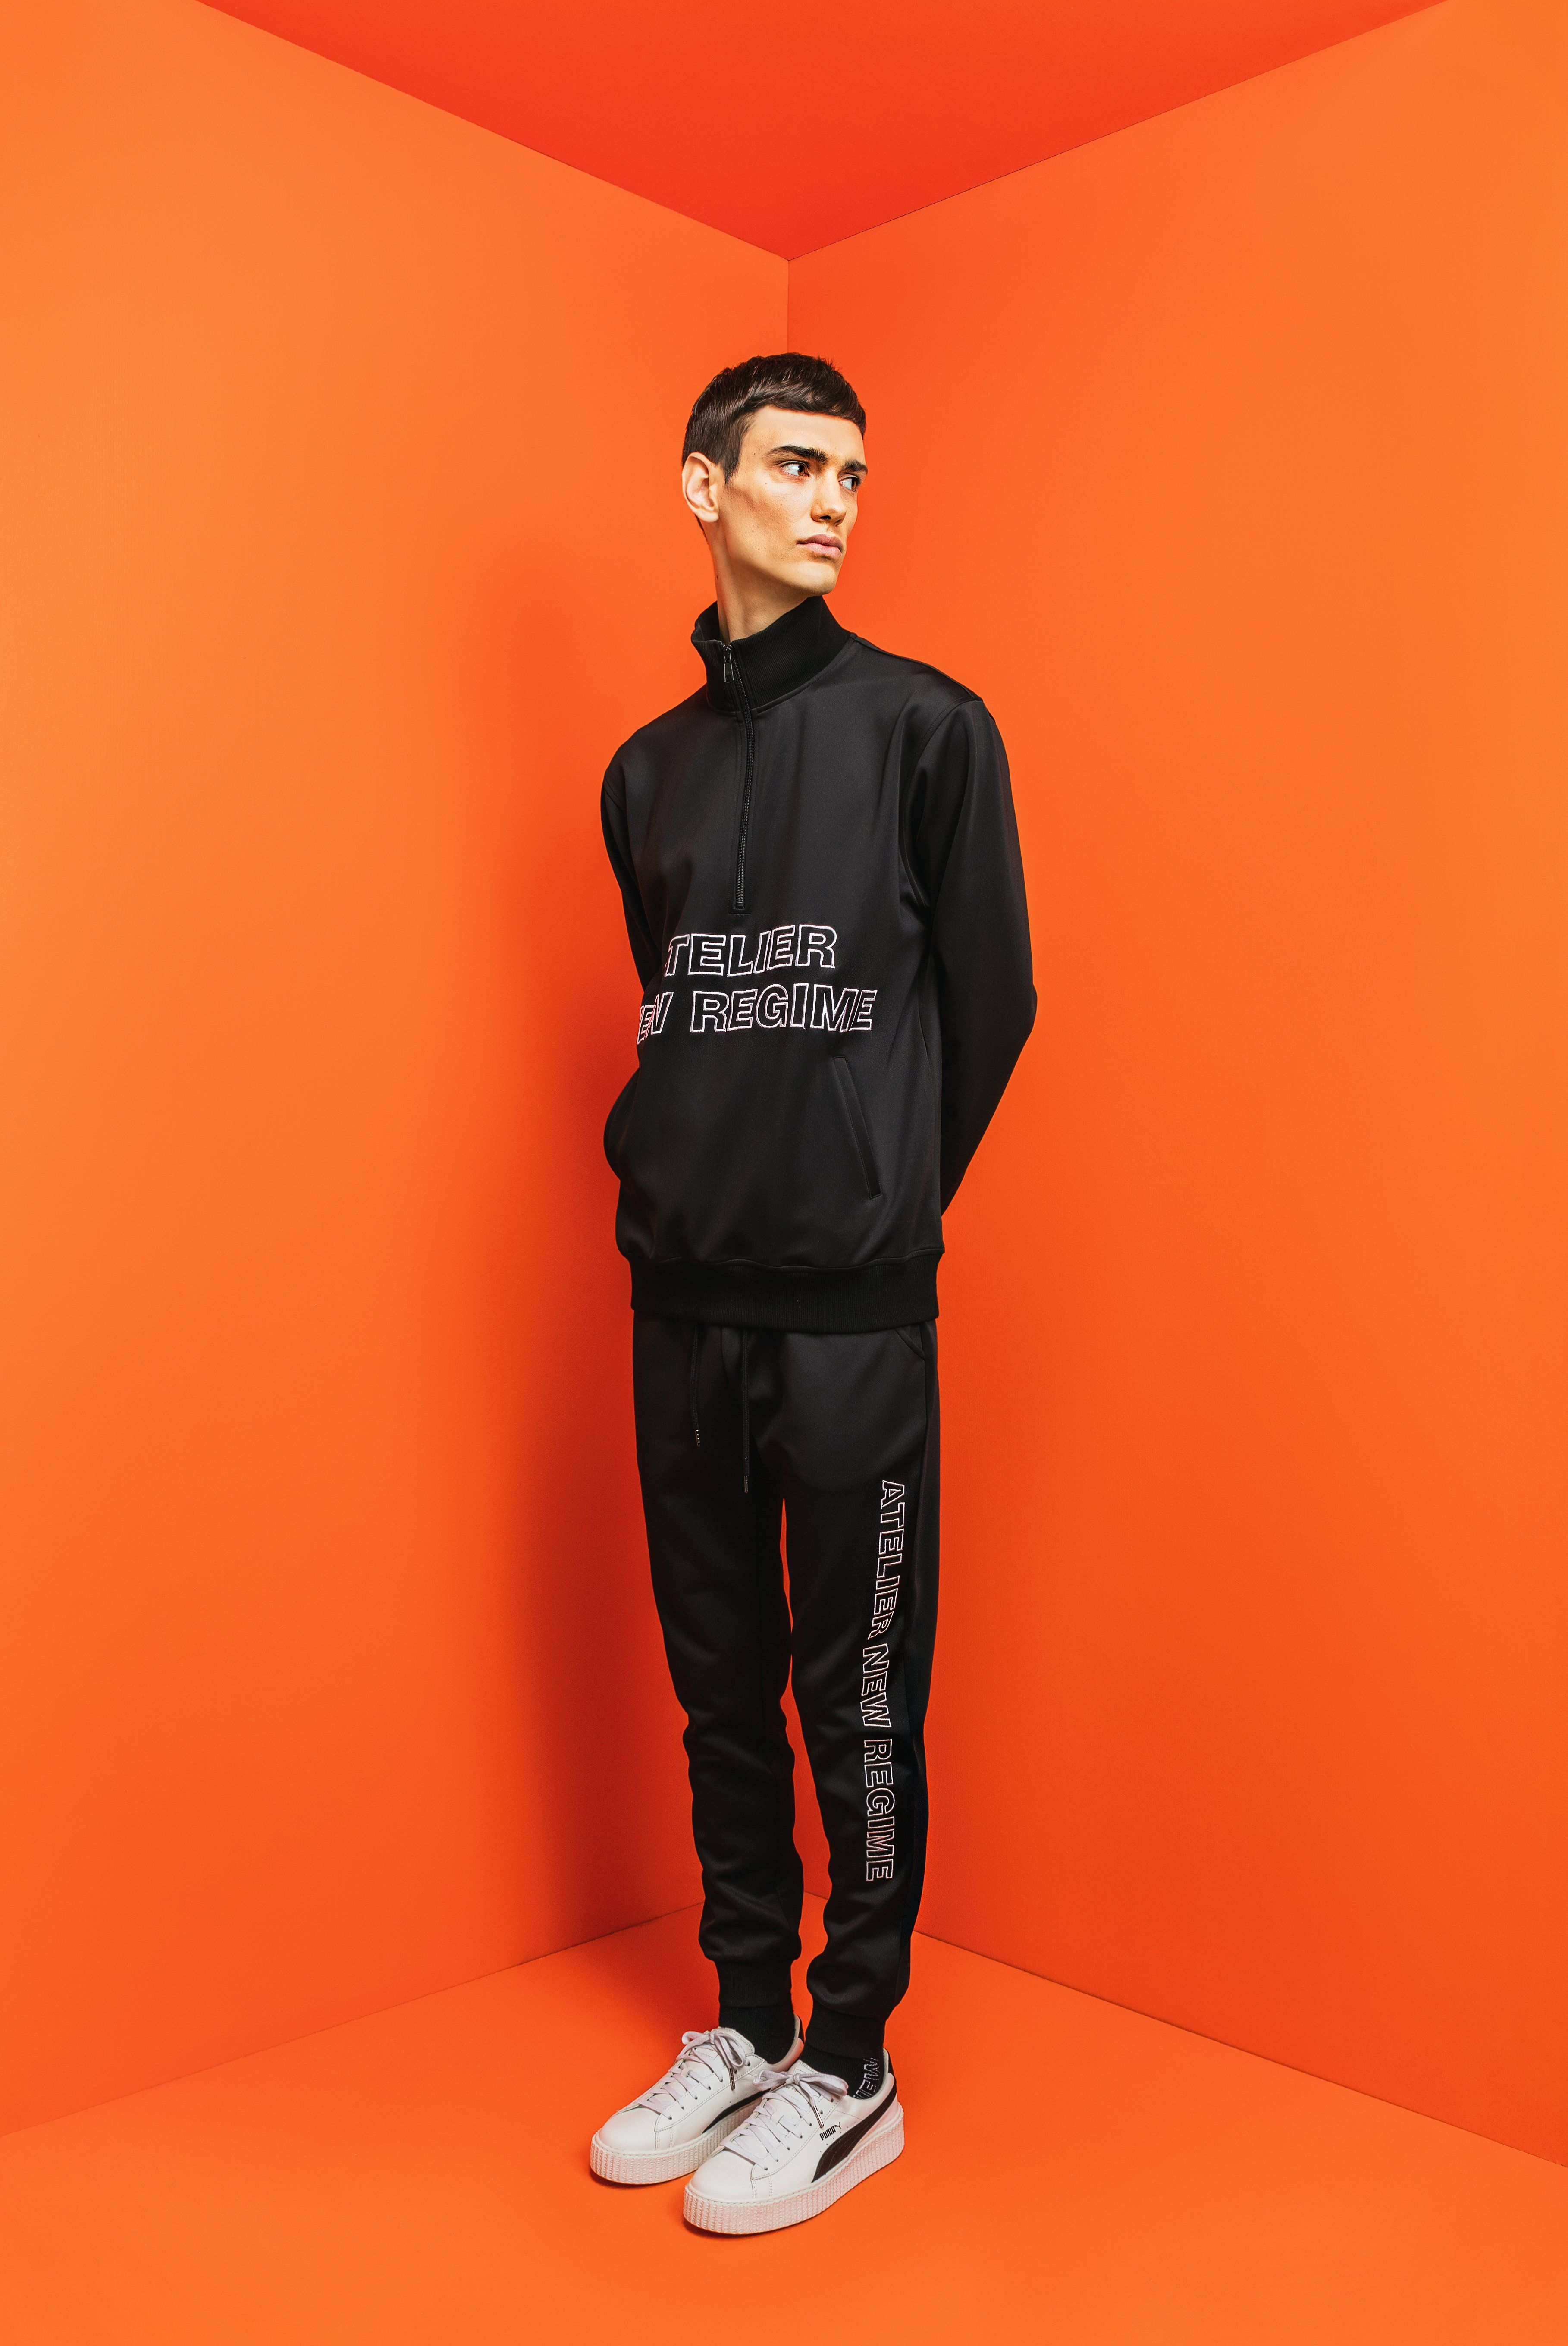 de584d8deb Atelier New Regime Pre-Fall '17 Lookbook | Logo Track Jacket in black  paired with matching black Logo Track Pants.